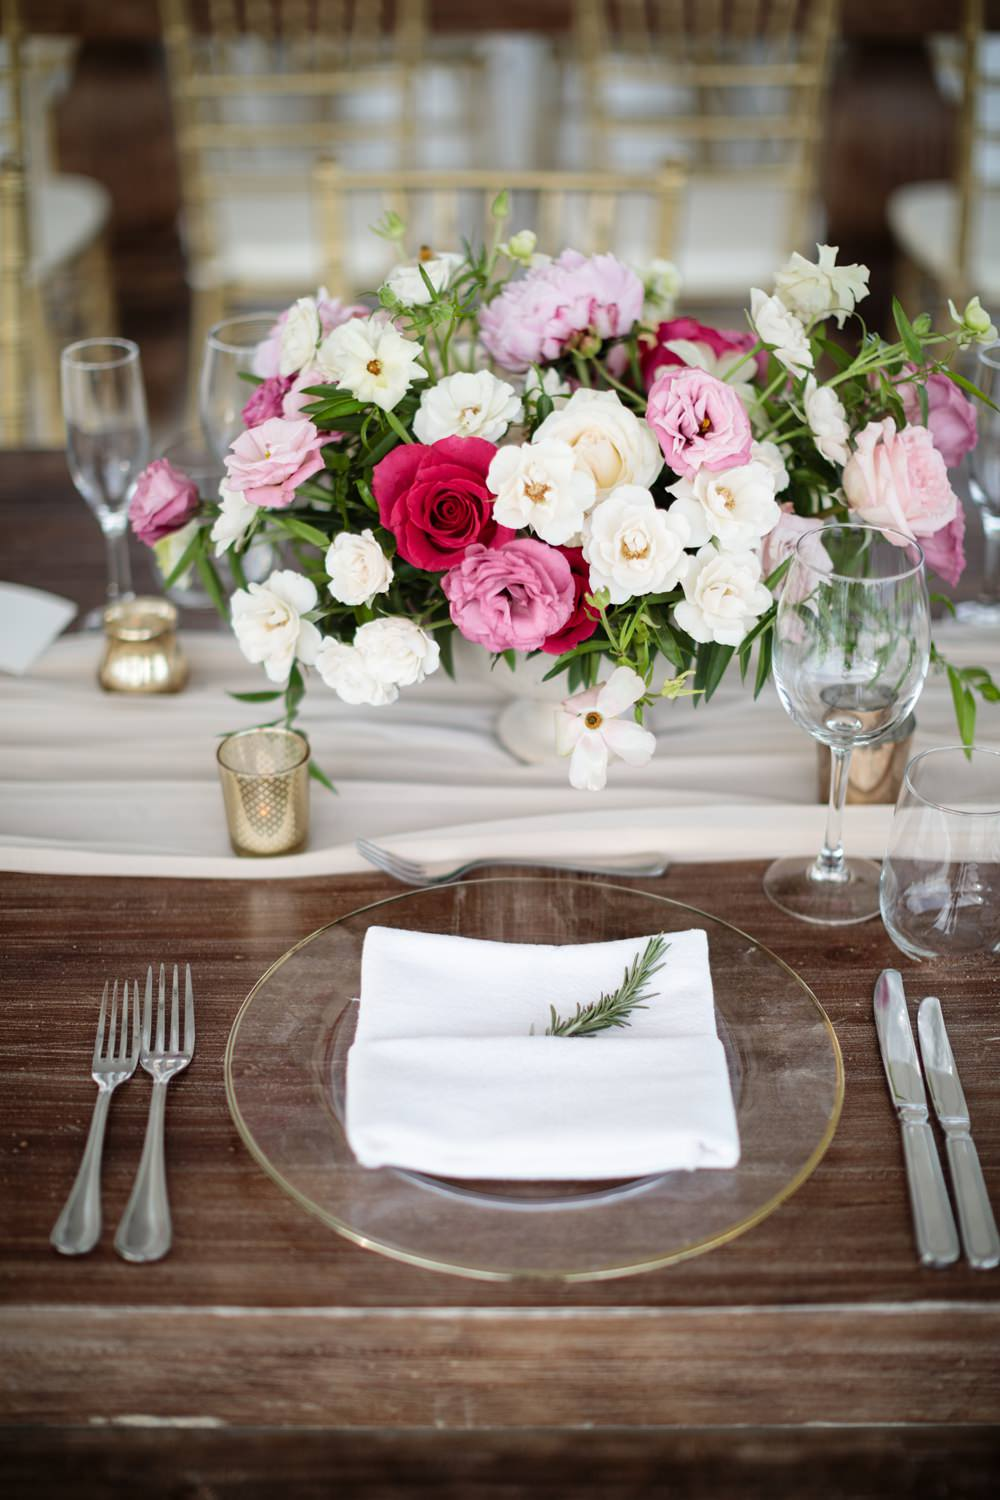 Rosemary Place Setting Flowers Centrepiece Los Cabos Wedding Anna Gomes Photo